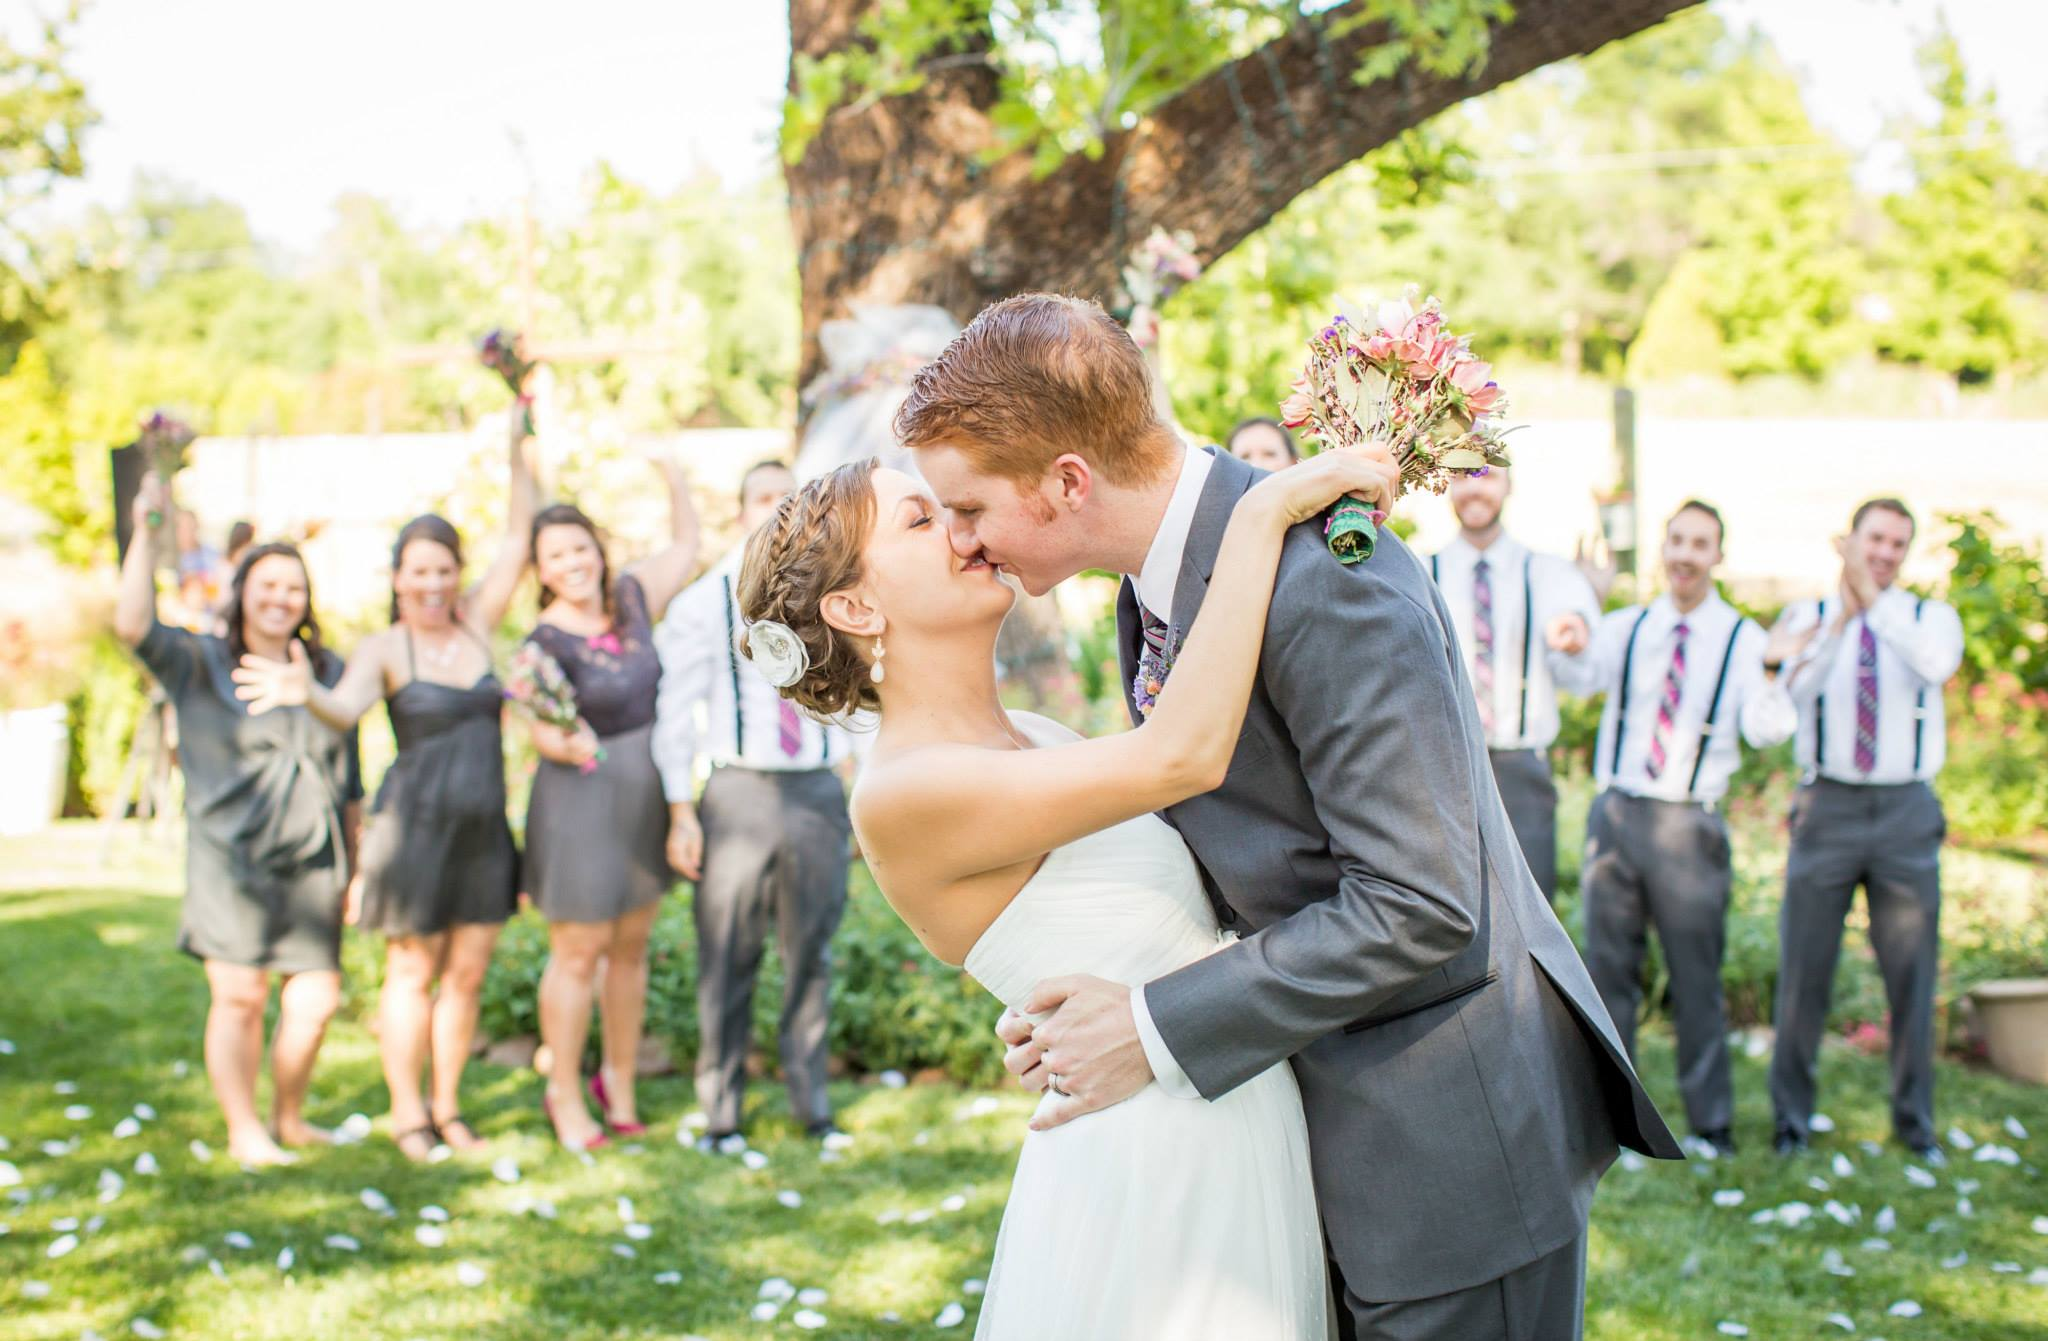 One of our amazing couples, Image via  Katelyn Owens Photography